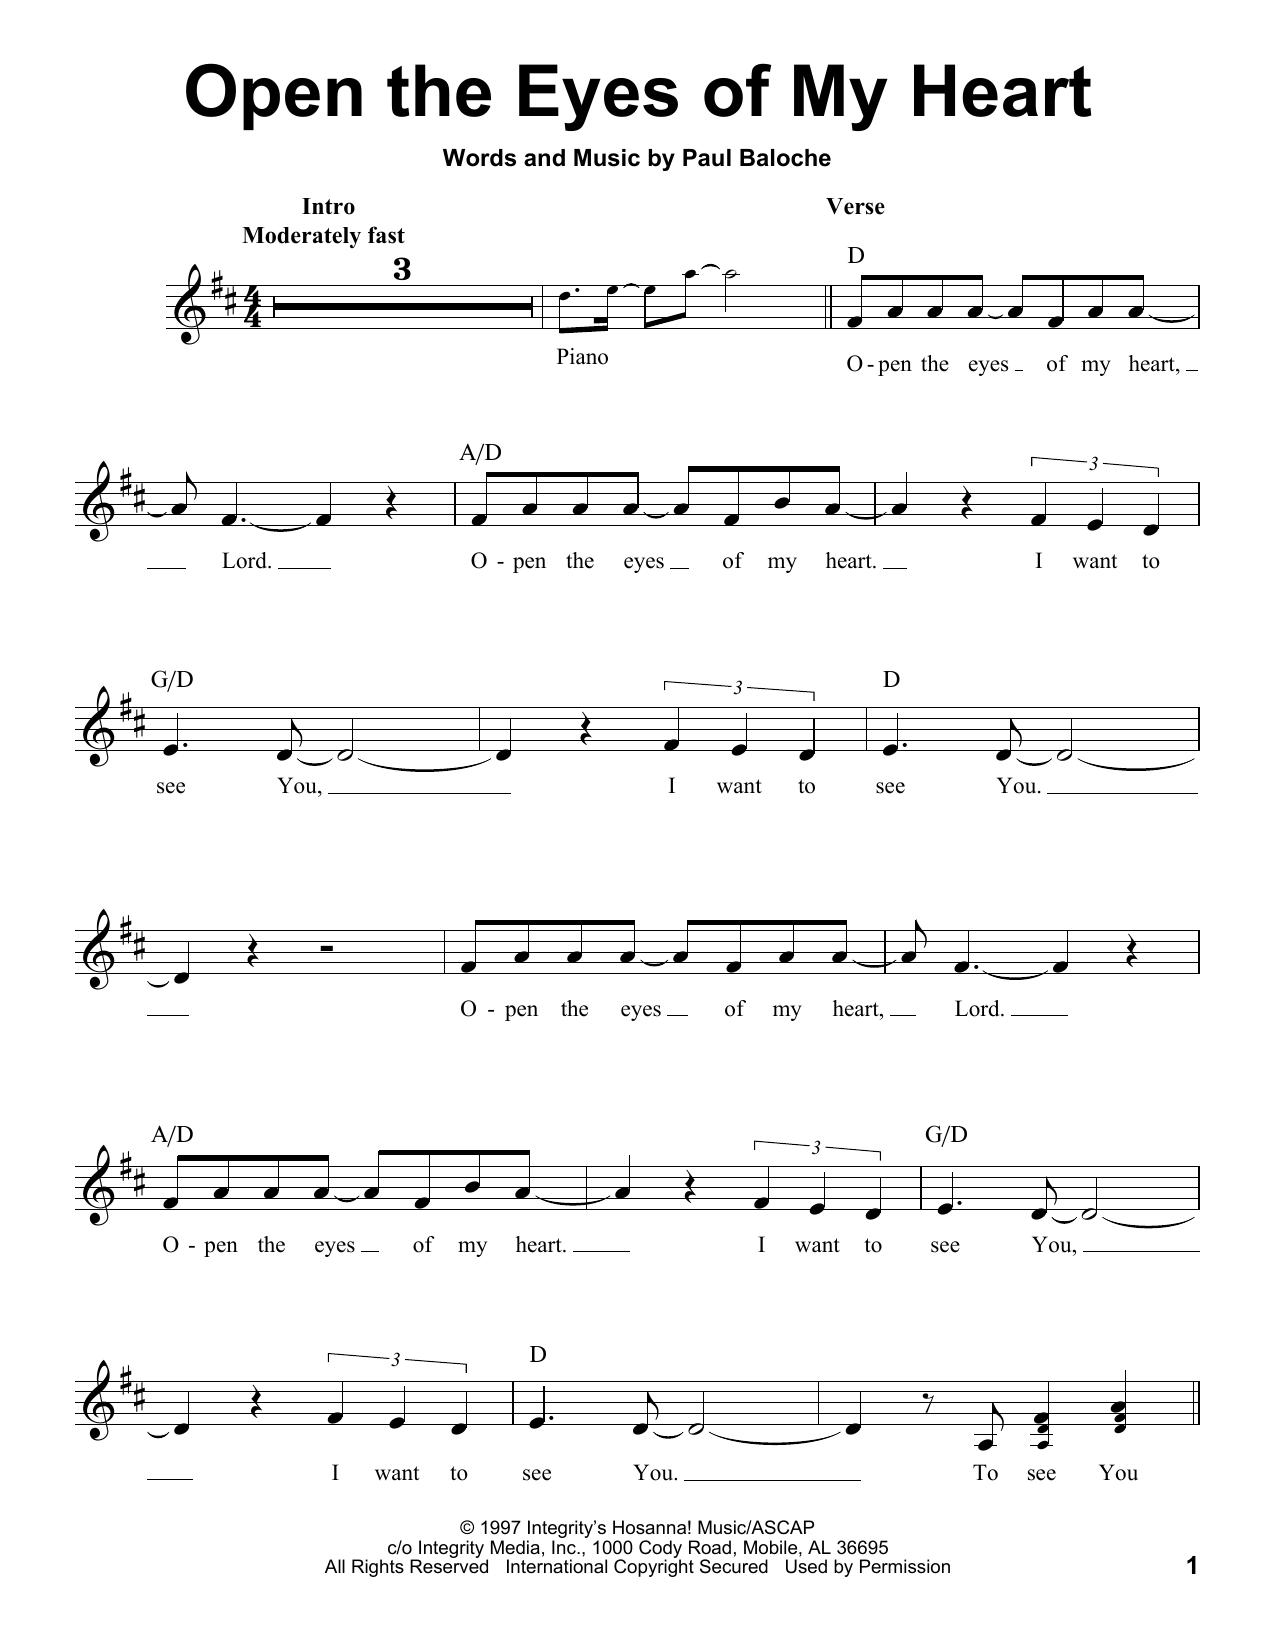 Praise Band Open The Eyes Of My Heart Sheet Music Notes, Chords   Download  Printable Pro Vocal PDF Score   SKU 15